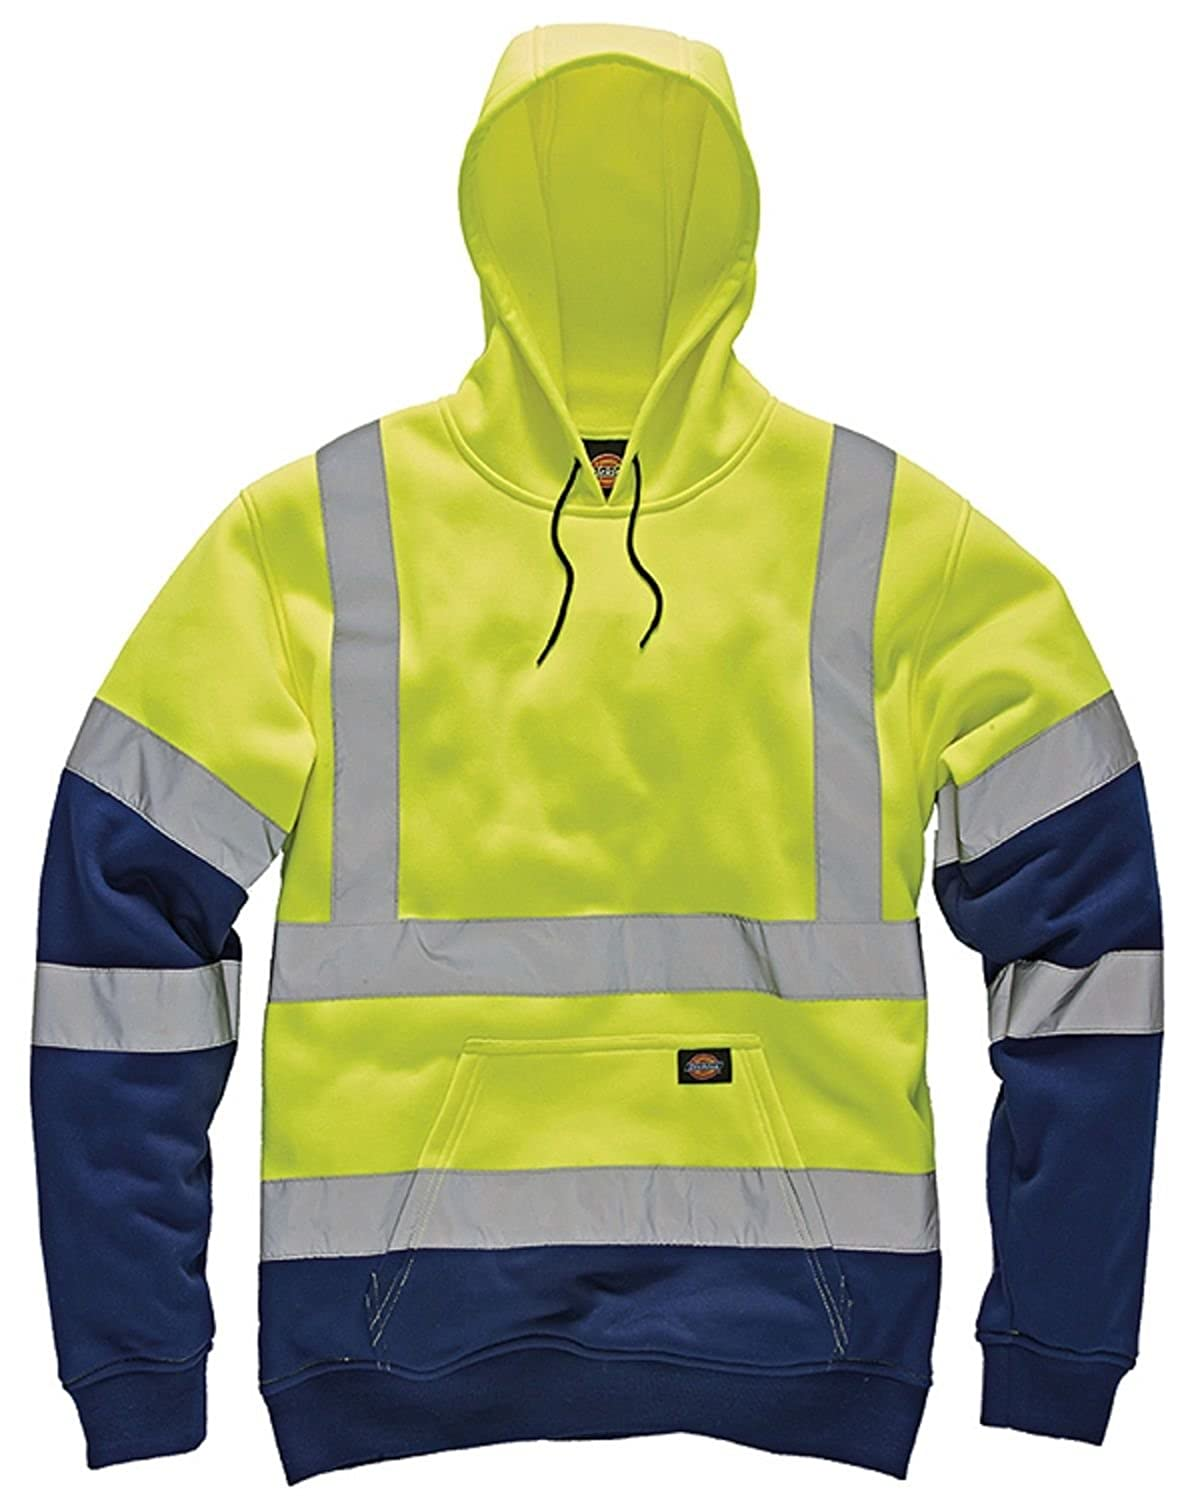 Amazon.com: Dickies Mens High Visibility Viz Two Tone Hoodie Hooded Sweatshirt Safety Work: Clothing